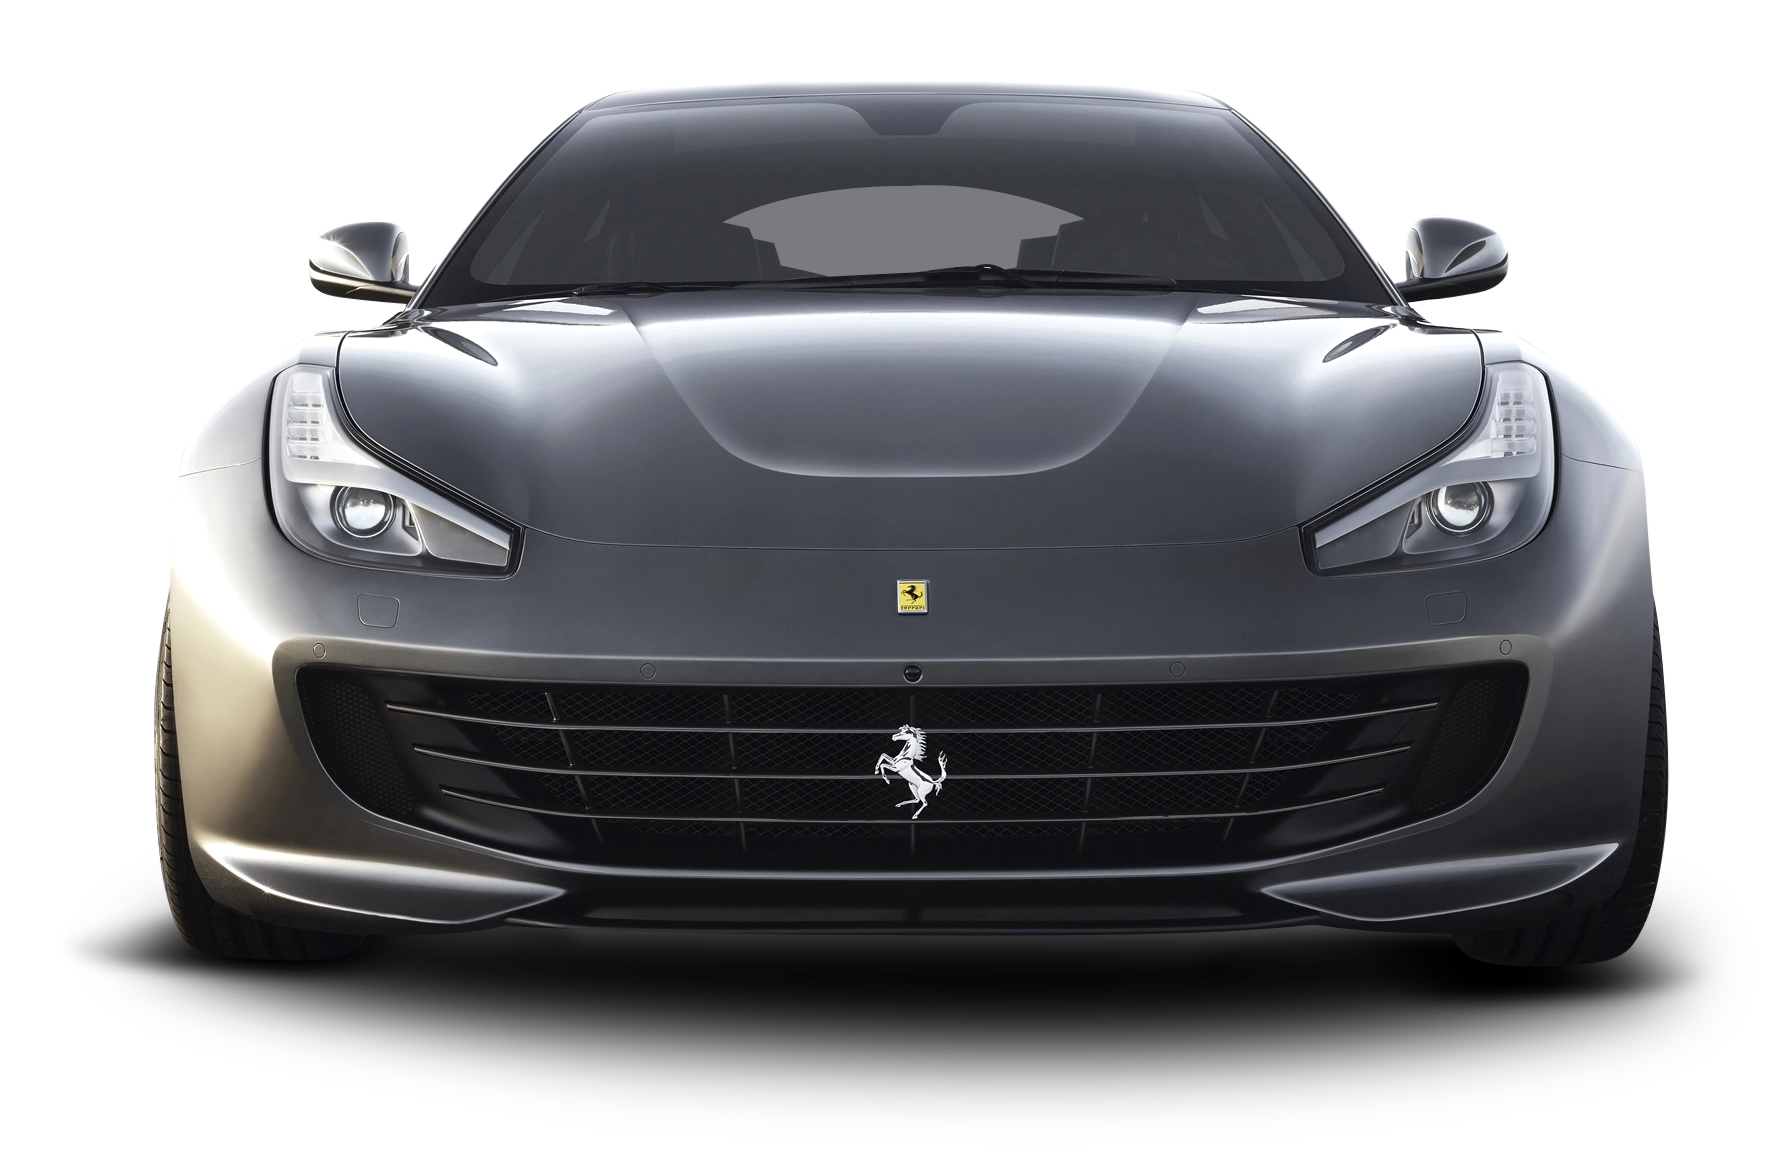 Car clipart front image free Ferrari GTC4 Lusso Front Gray Car PNG Image - PurePNG | Free ... image free